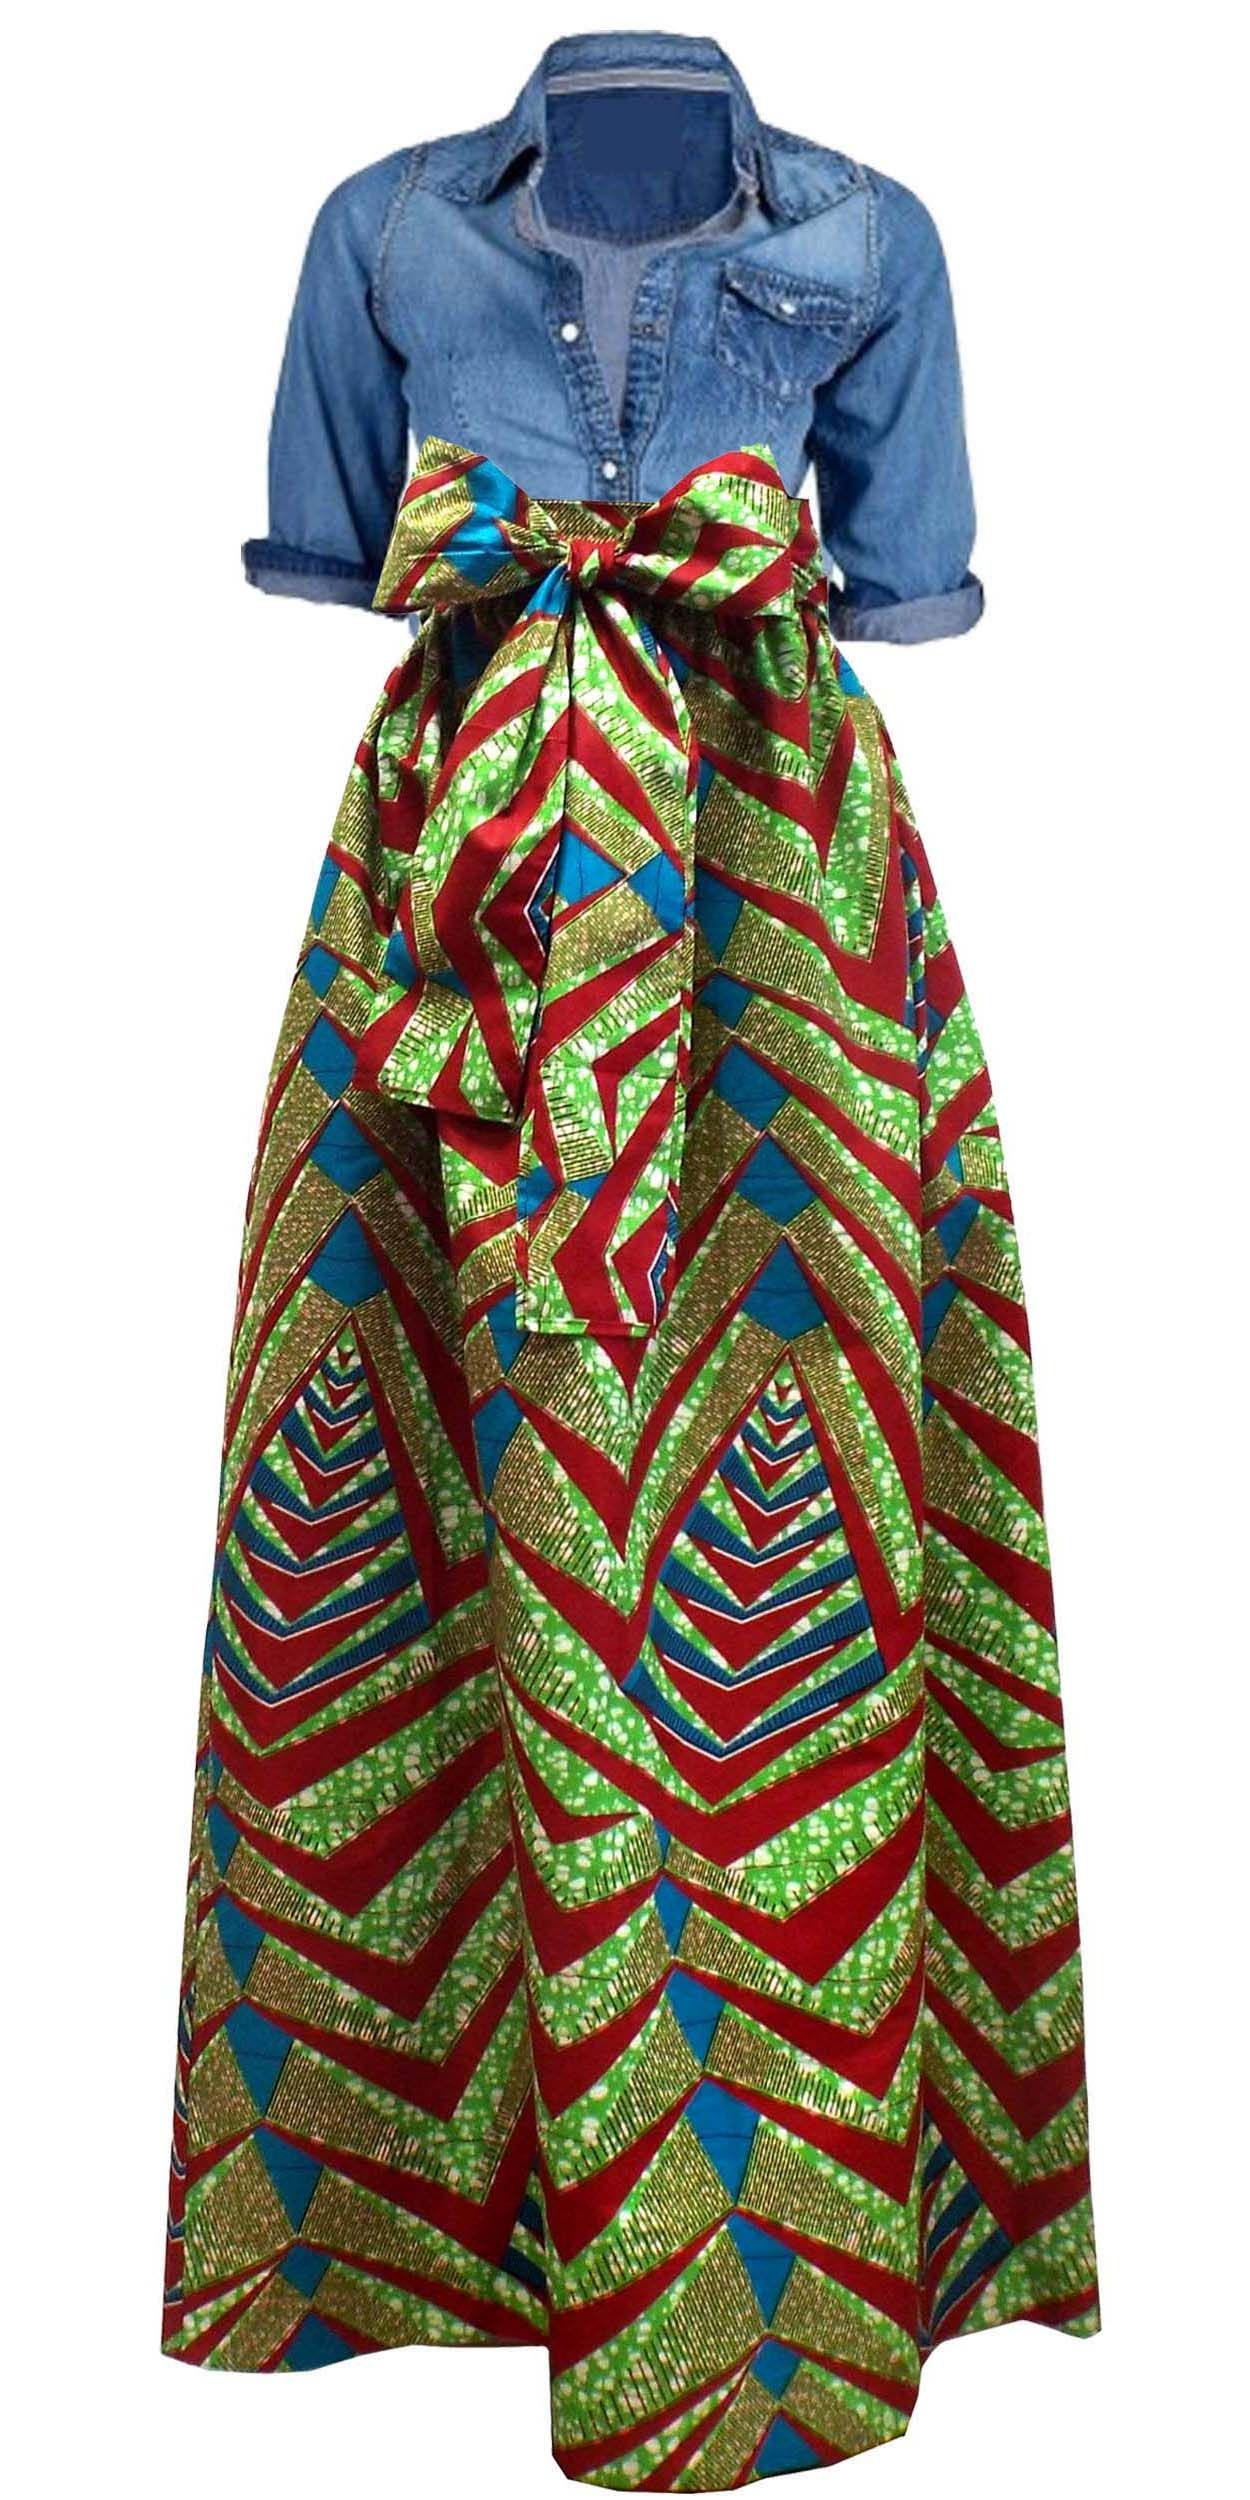 5fbed515f0 African Print Maxi skirt with pockets and sash paired with jean top ~African  fashion, Ankara, kitenge, African women dresses, African prints, African  men's ...